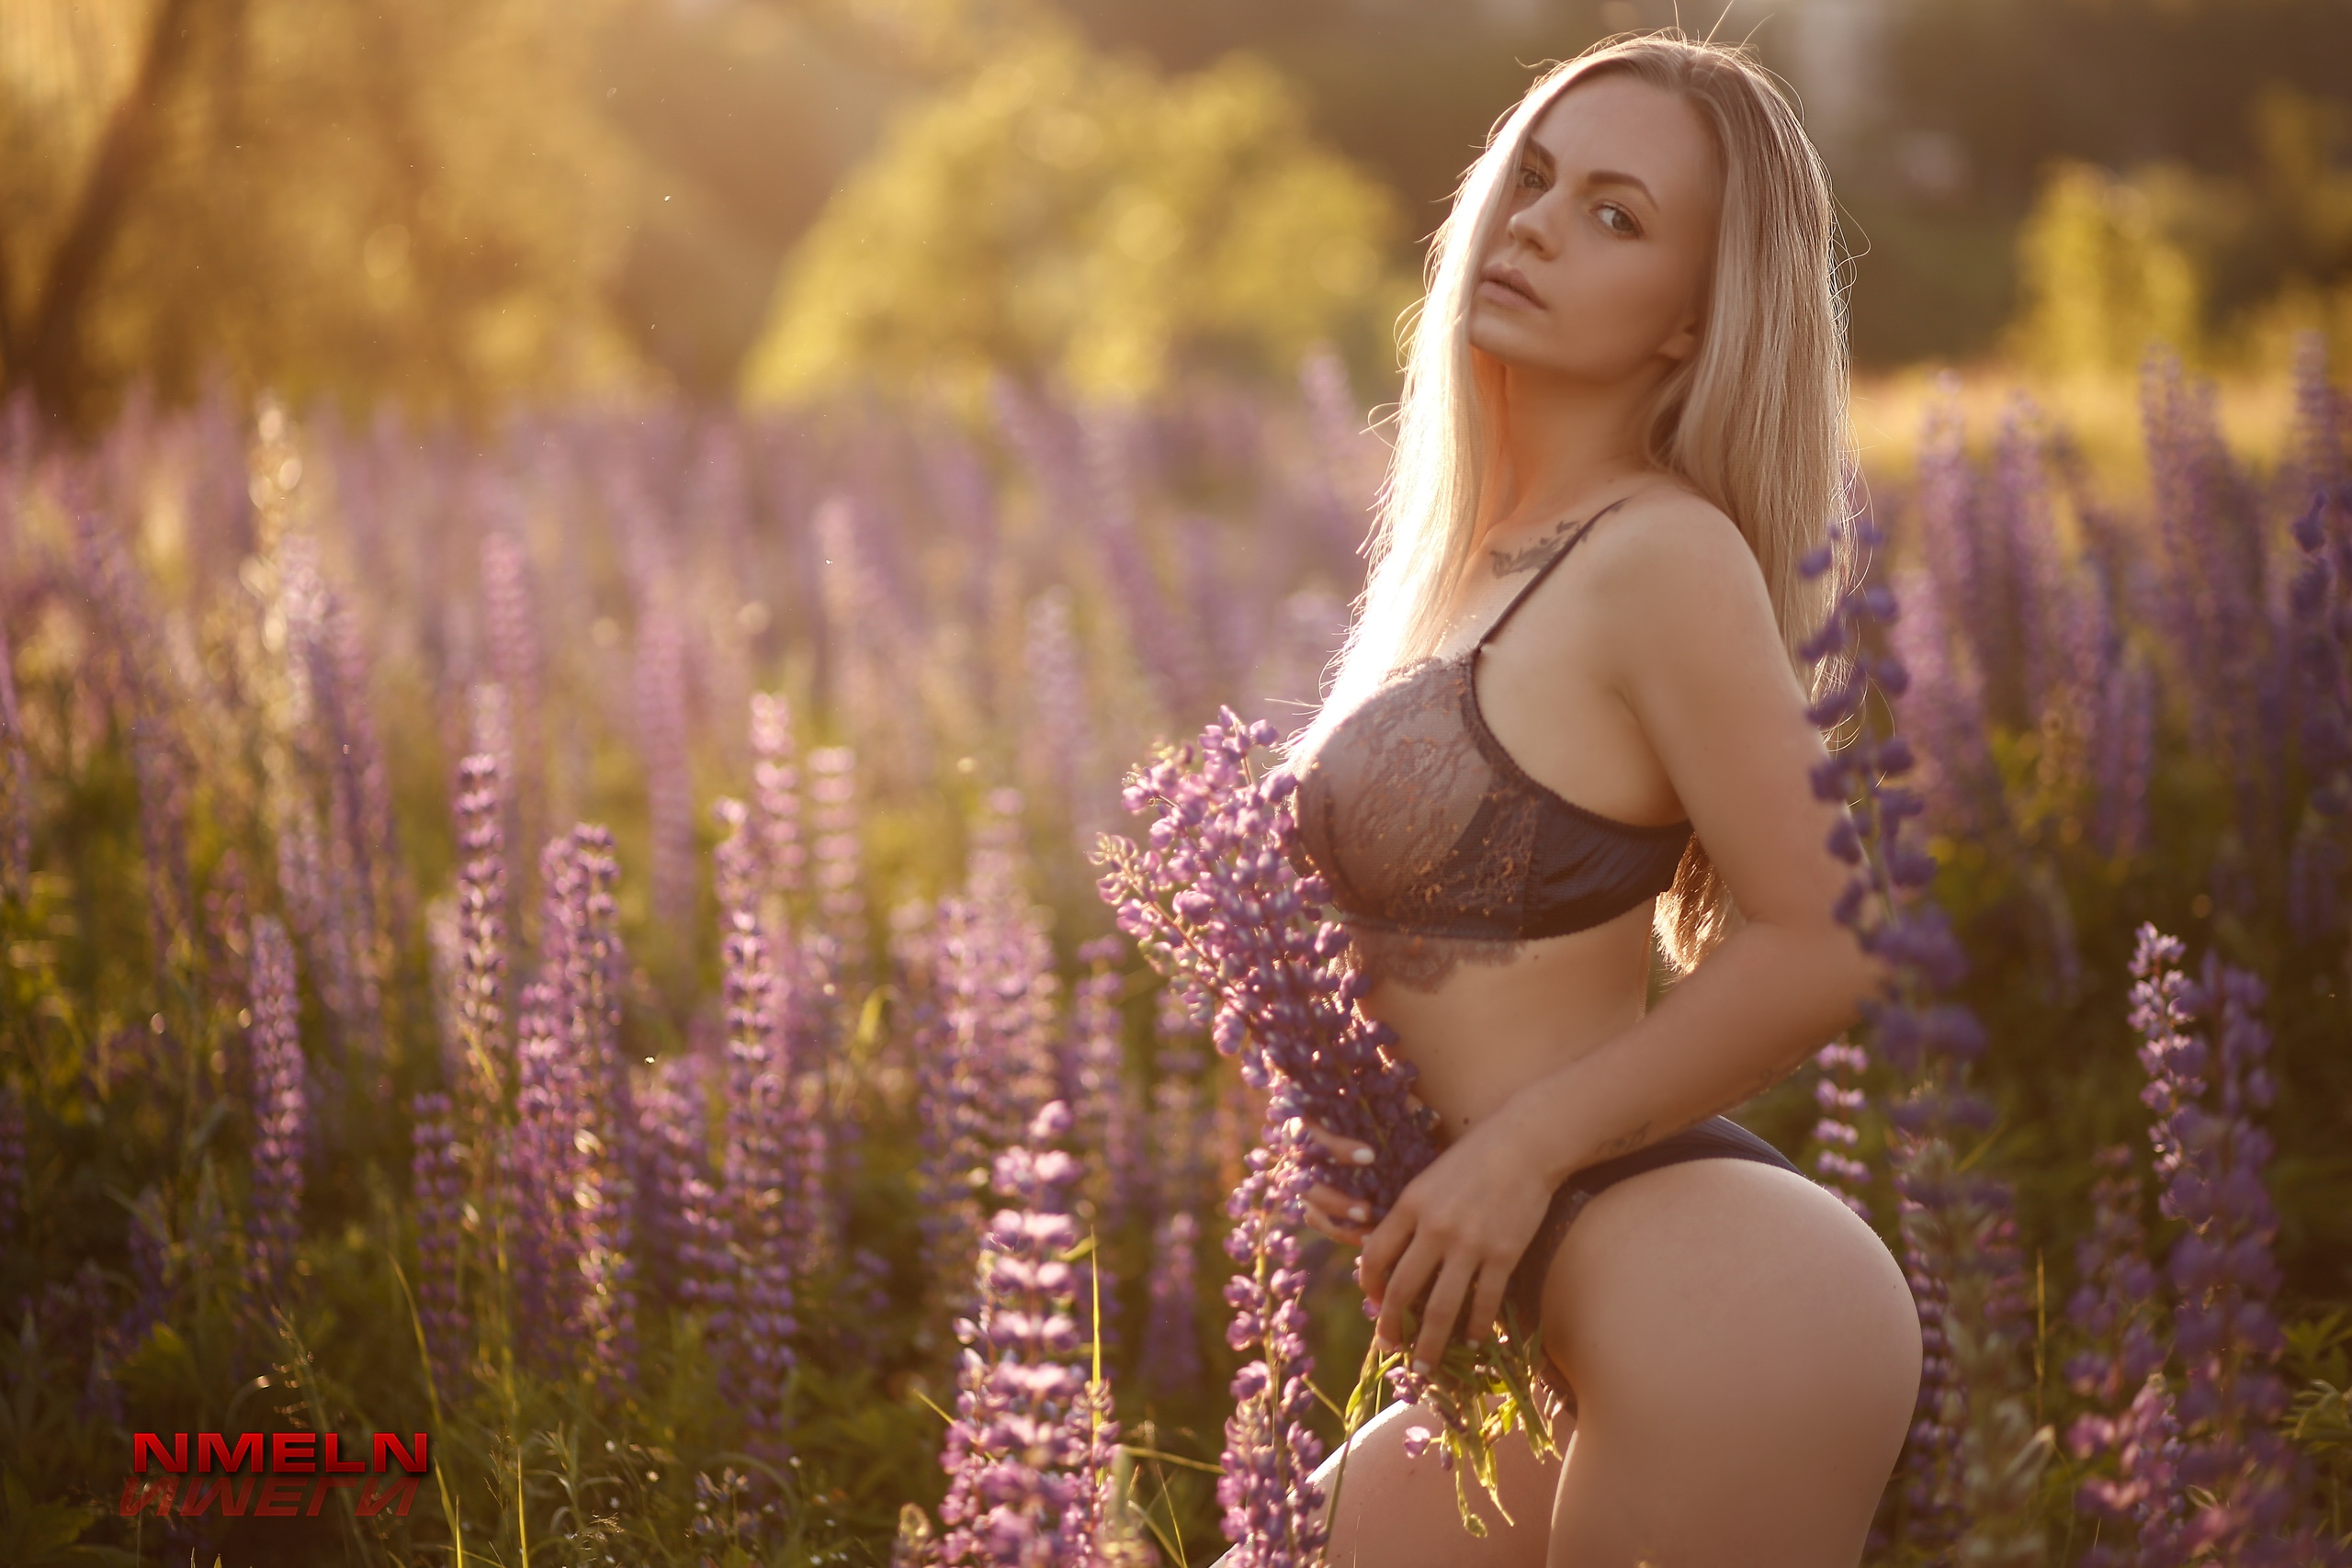 People 2560x1707 Nika Meln women blonde long hair straight hair looking at viewer tattoo lingerie bra panties nature flowers field lavender Aygul Ismagilova